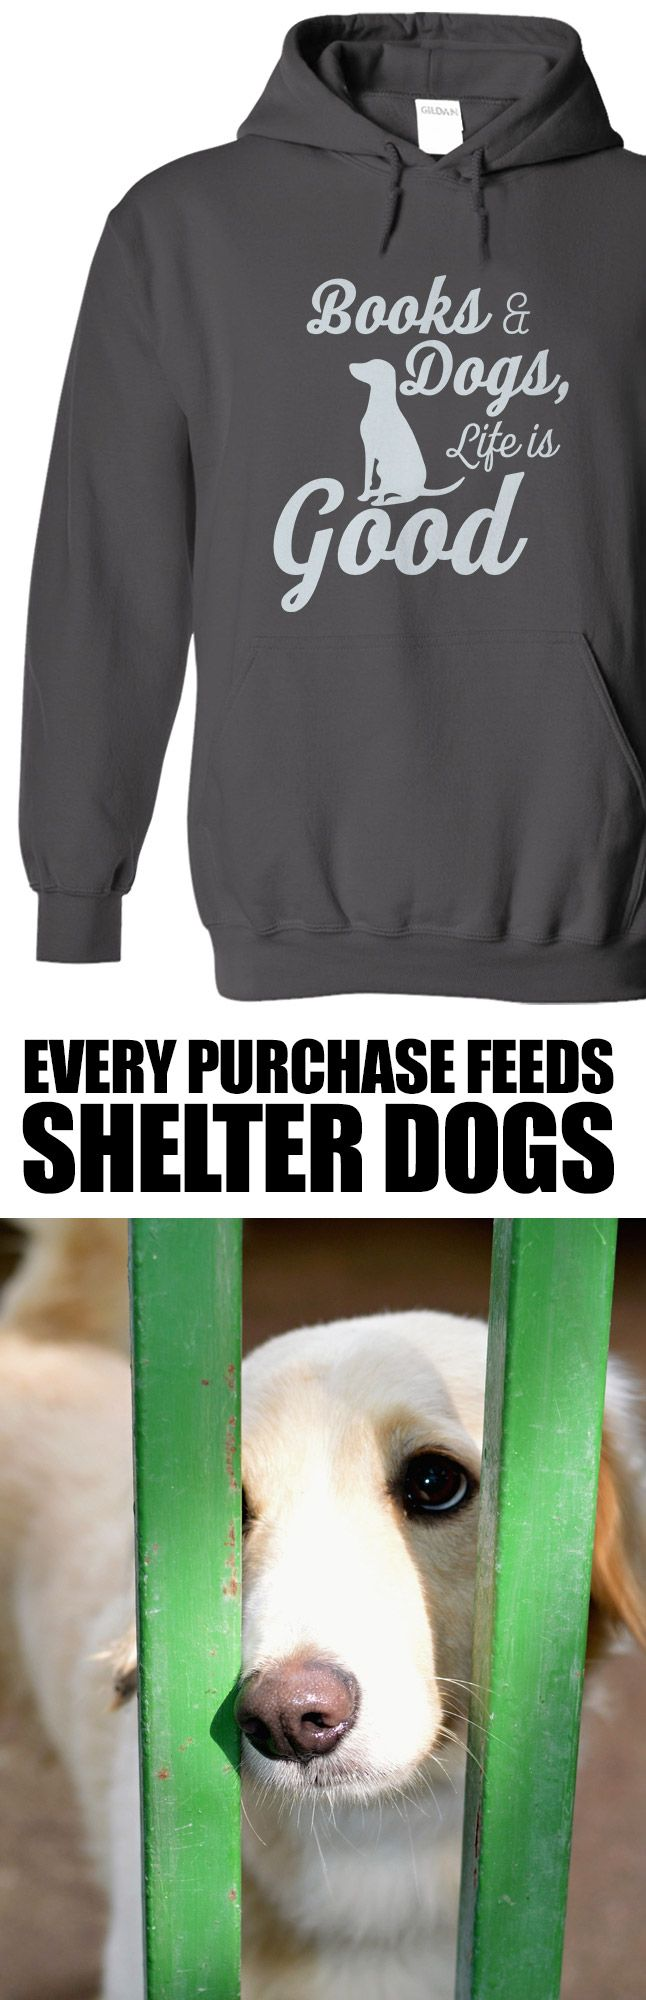 Love this design and this cause! Every purchase of a hoodie feeds 15 shelter dogs. A t-shirt feeds 7! http://iheartdogs.com/product/life-is-good-hoodie/?utm_source=PinterestAd_LifeIsGoodHoodie-BOOKS&utm_medium=link&utm_campaign=PinterestAd_LifeIsGoodHoodie-BOOKS